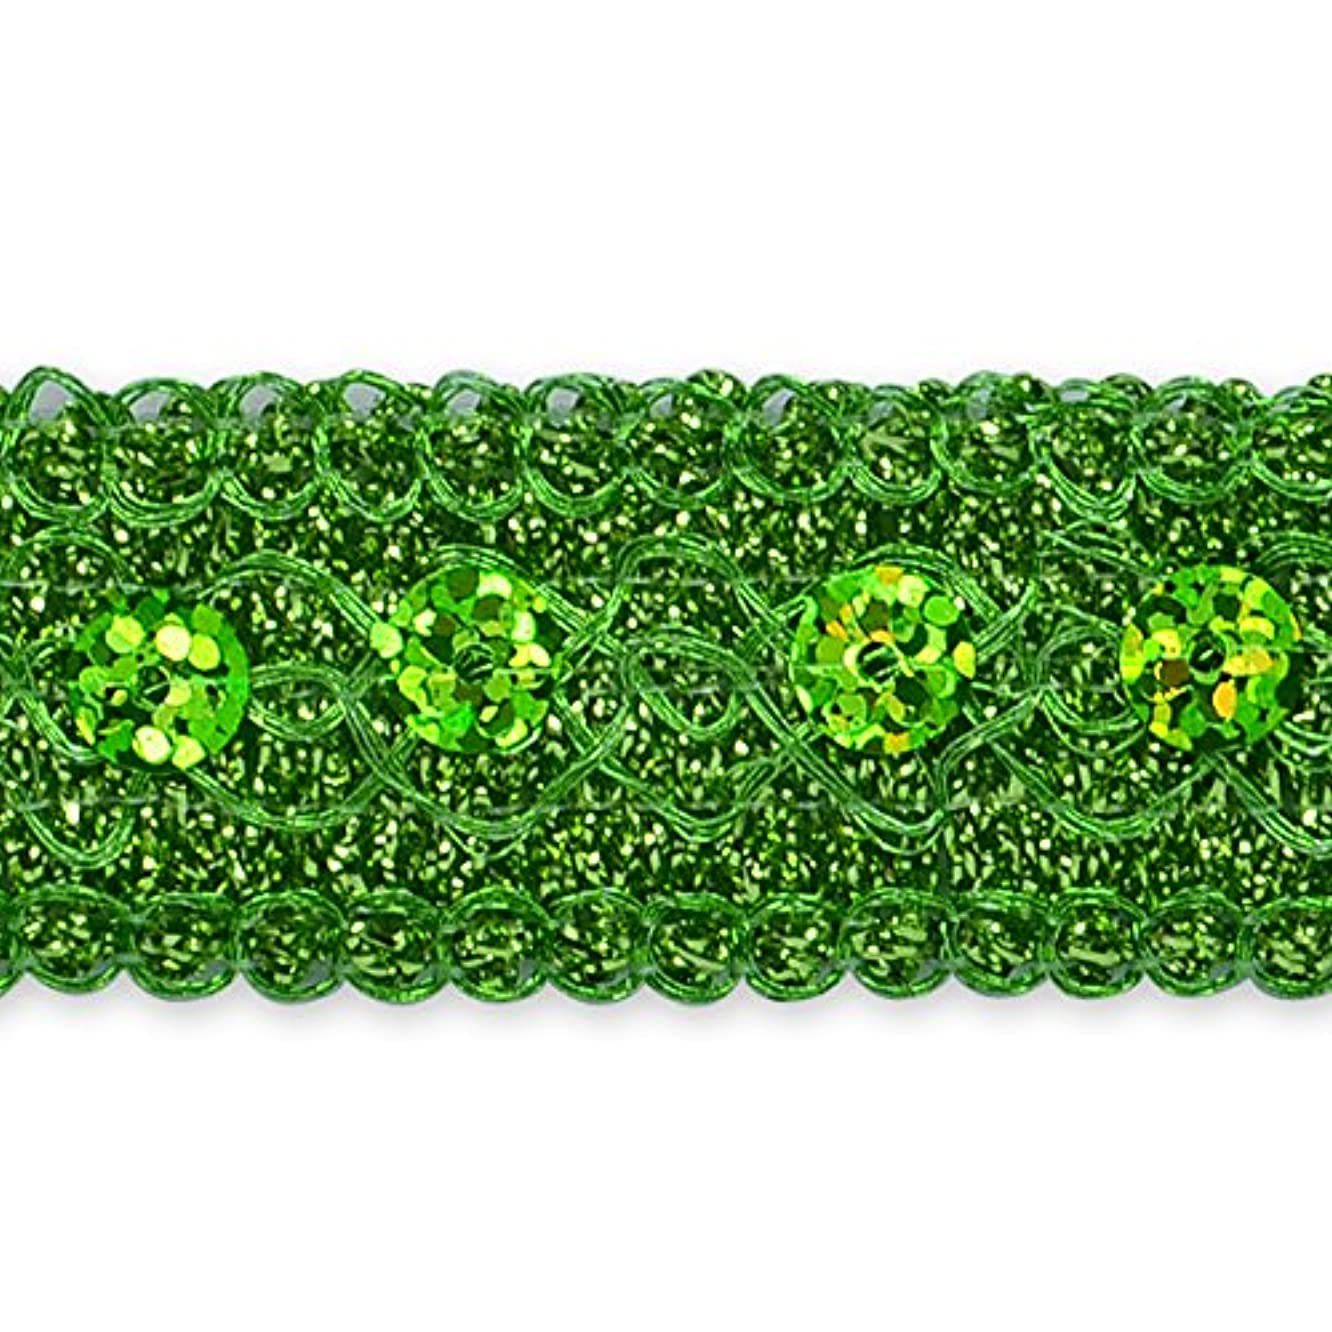 Expo IR7043LM-20 20 yds of Adriana Sequin Met Braid Trim Lime